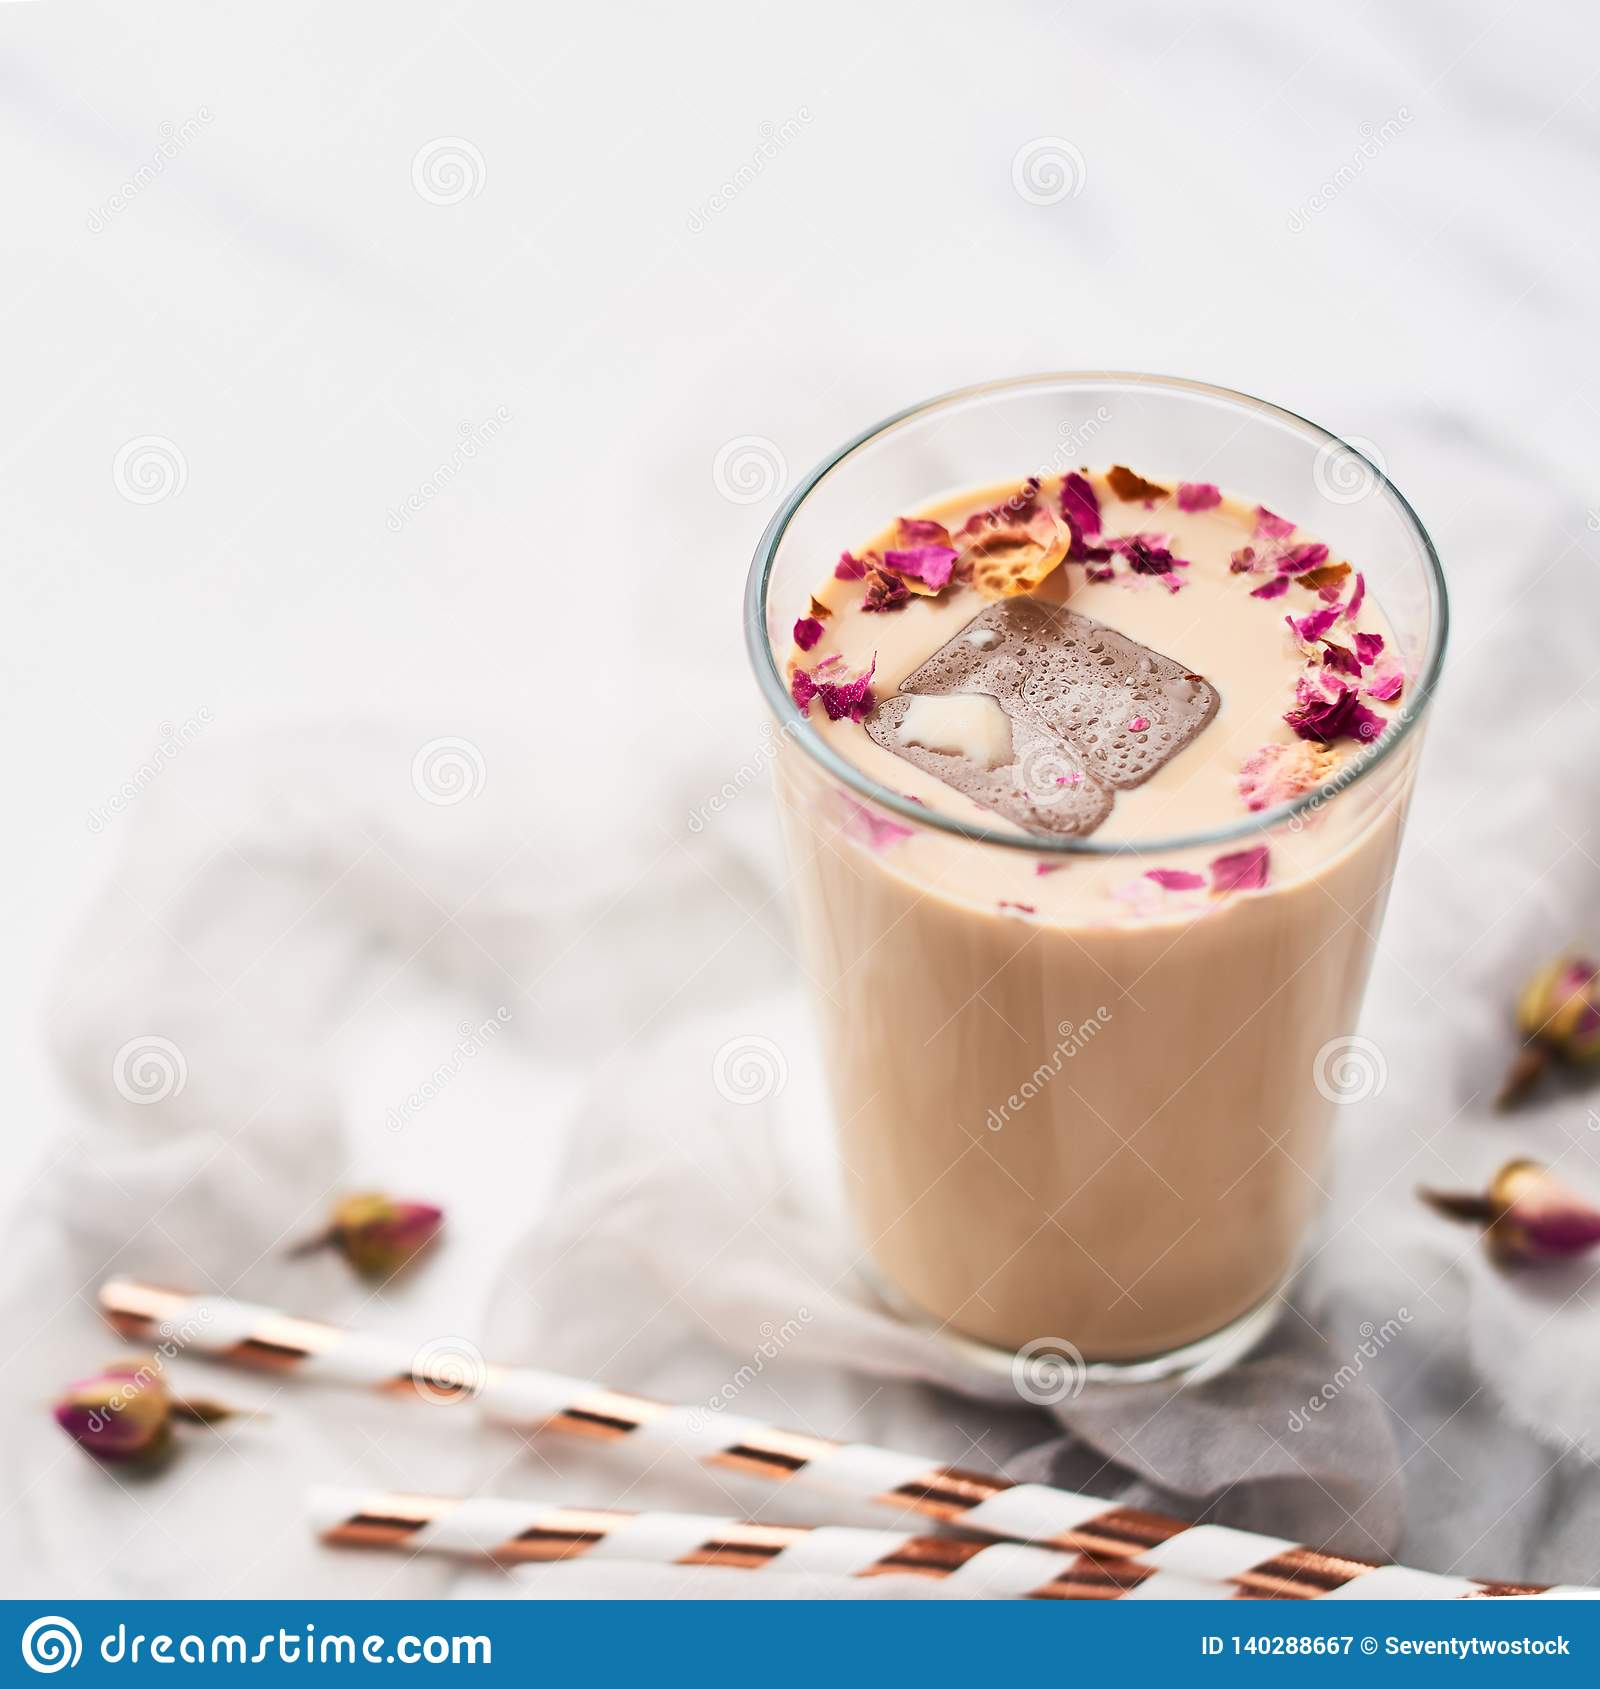 Iced coffee with rose and cardamom in a tall glass